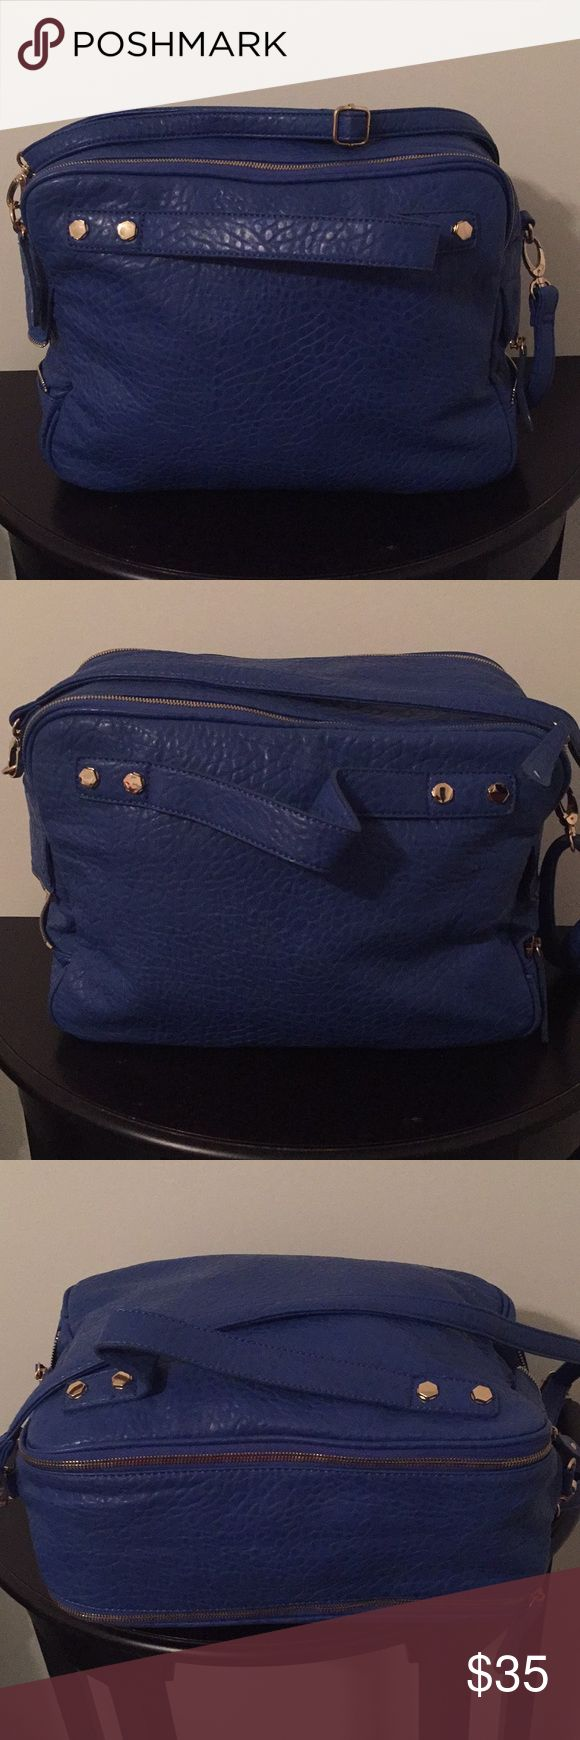 Street Level Large Crossbody Beautiful large blue bag that holds the kitchen sink! You can carry top handle or Crossbody. This bag was used 1 time. No flaws at all! This is just a cool looking bag!! I ship the same or next business day! Street Level Bags Crossbody Bags